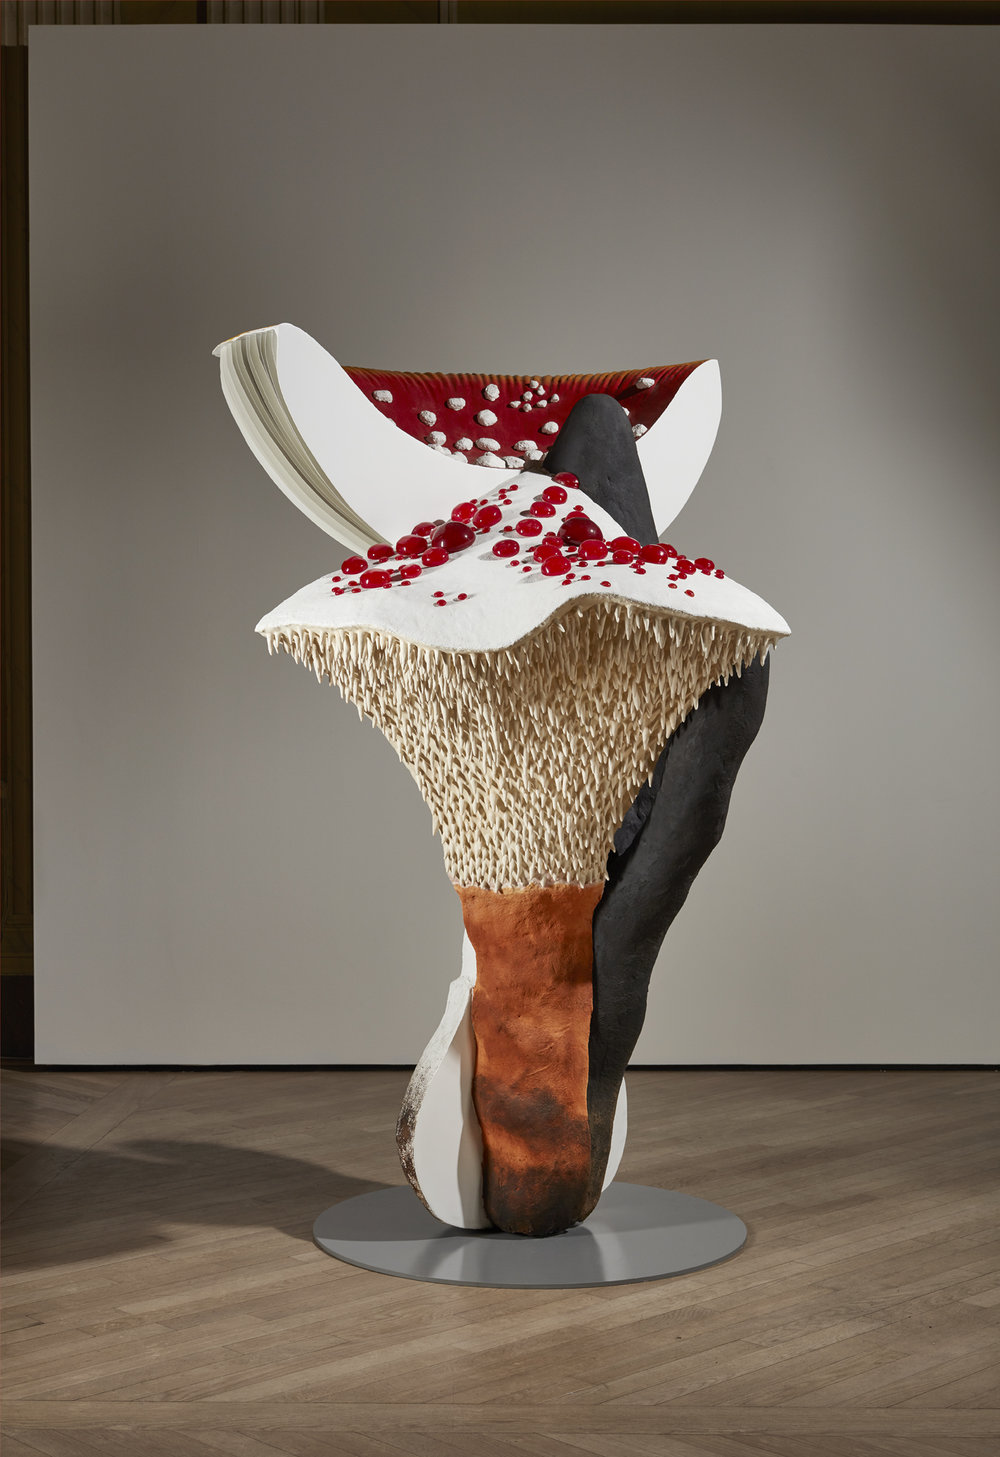 Carsten Höller   Giant Triple Mushroom,  2015 Fly agaric - Fliegenpilz -  Amanita muscaria  / Devil's Tooth - Scharfer Korkstacheling -  Hydnellum peckii  / Stag's Horn - Holzkeule -  Xylaria  sp. Polyester paint, synthetic resin, acrylic paint, wire, putty, polyurethane, rigid foam, stainless steel 203,2 x 142,2 x 142,2 cm Unique